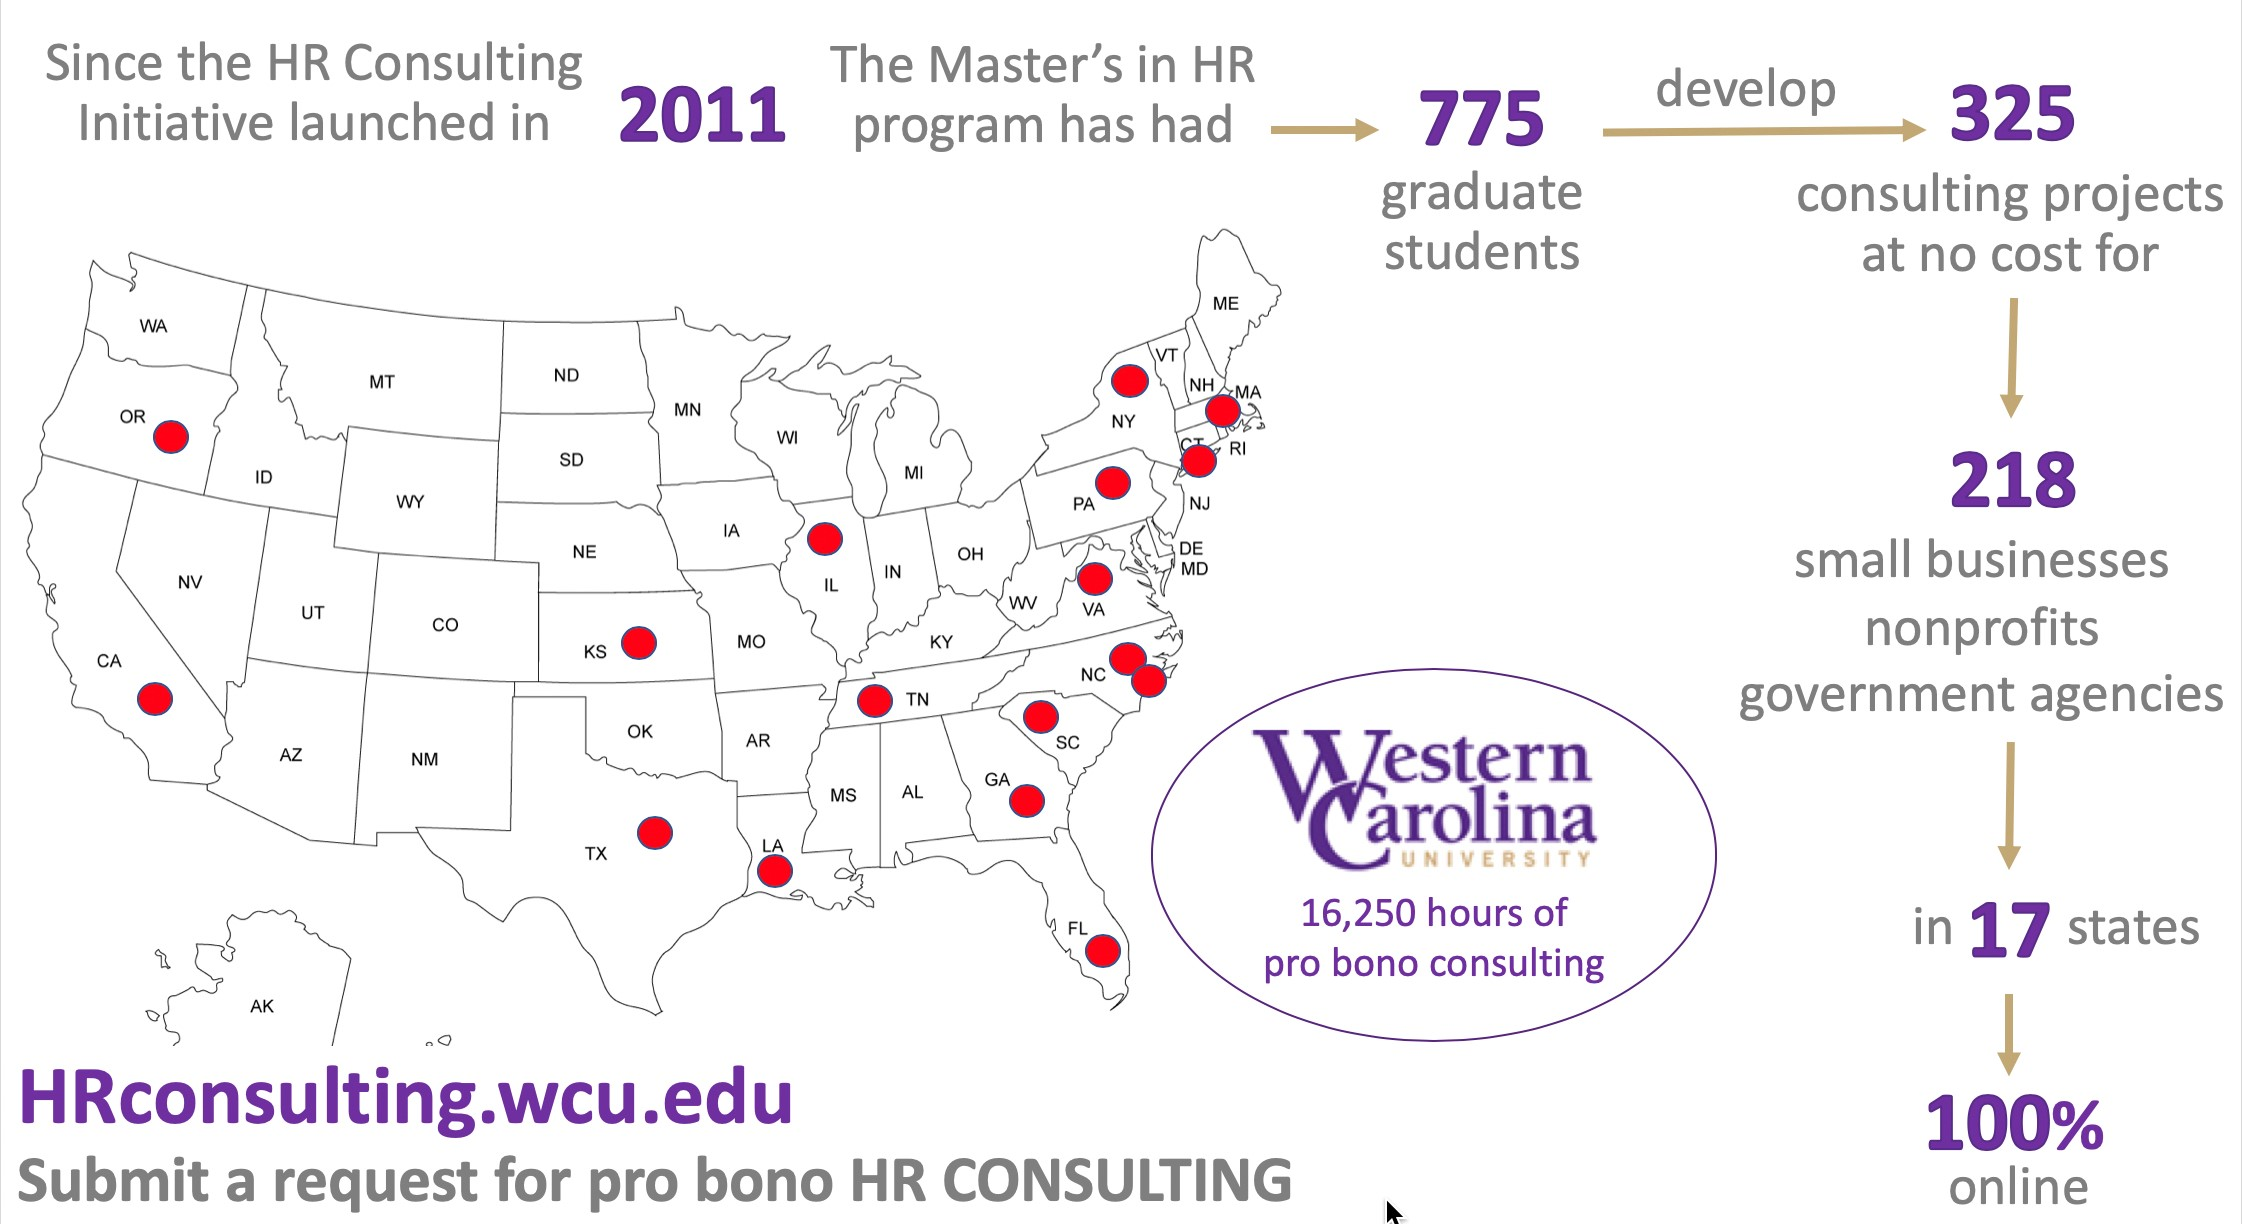 HR Consulting - Infographic 2018 - Visually displaying the number of graduate students, pro bono clients, and states represented.